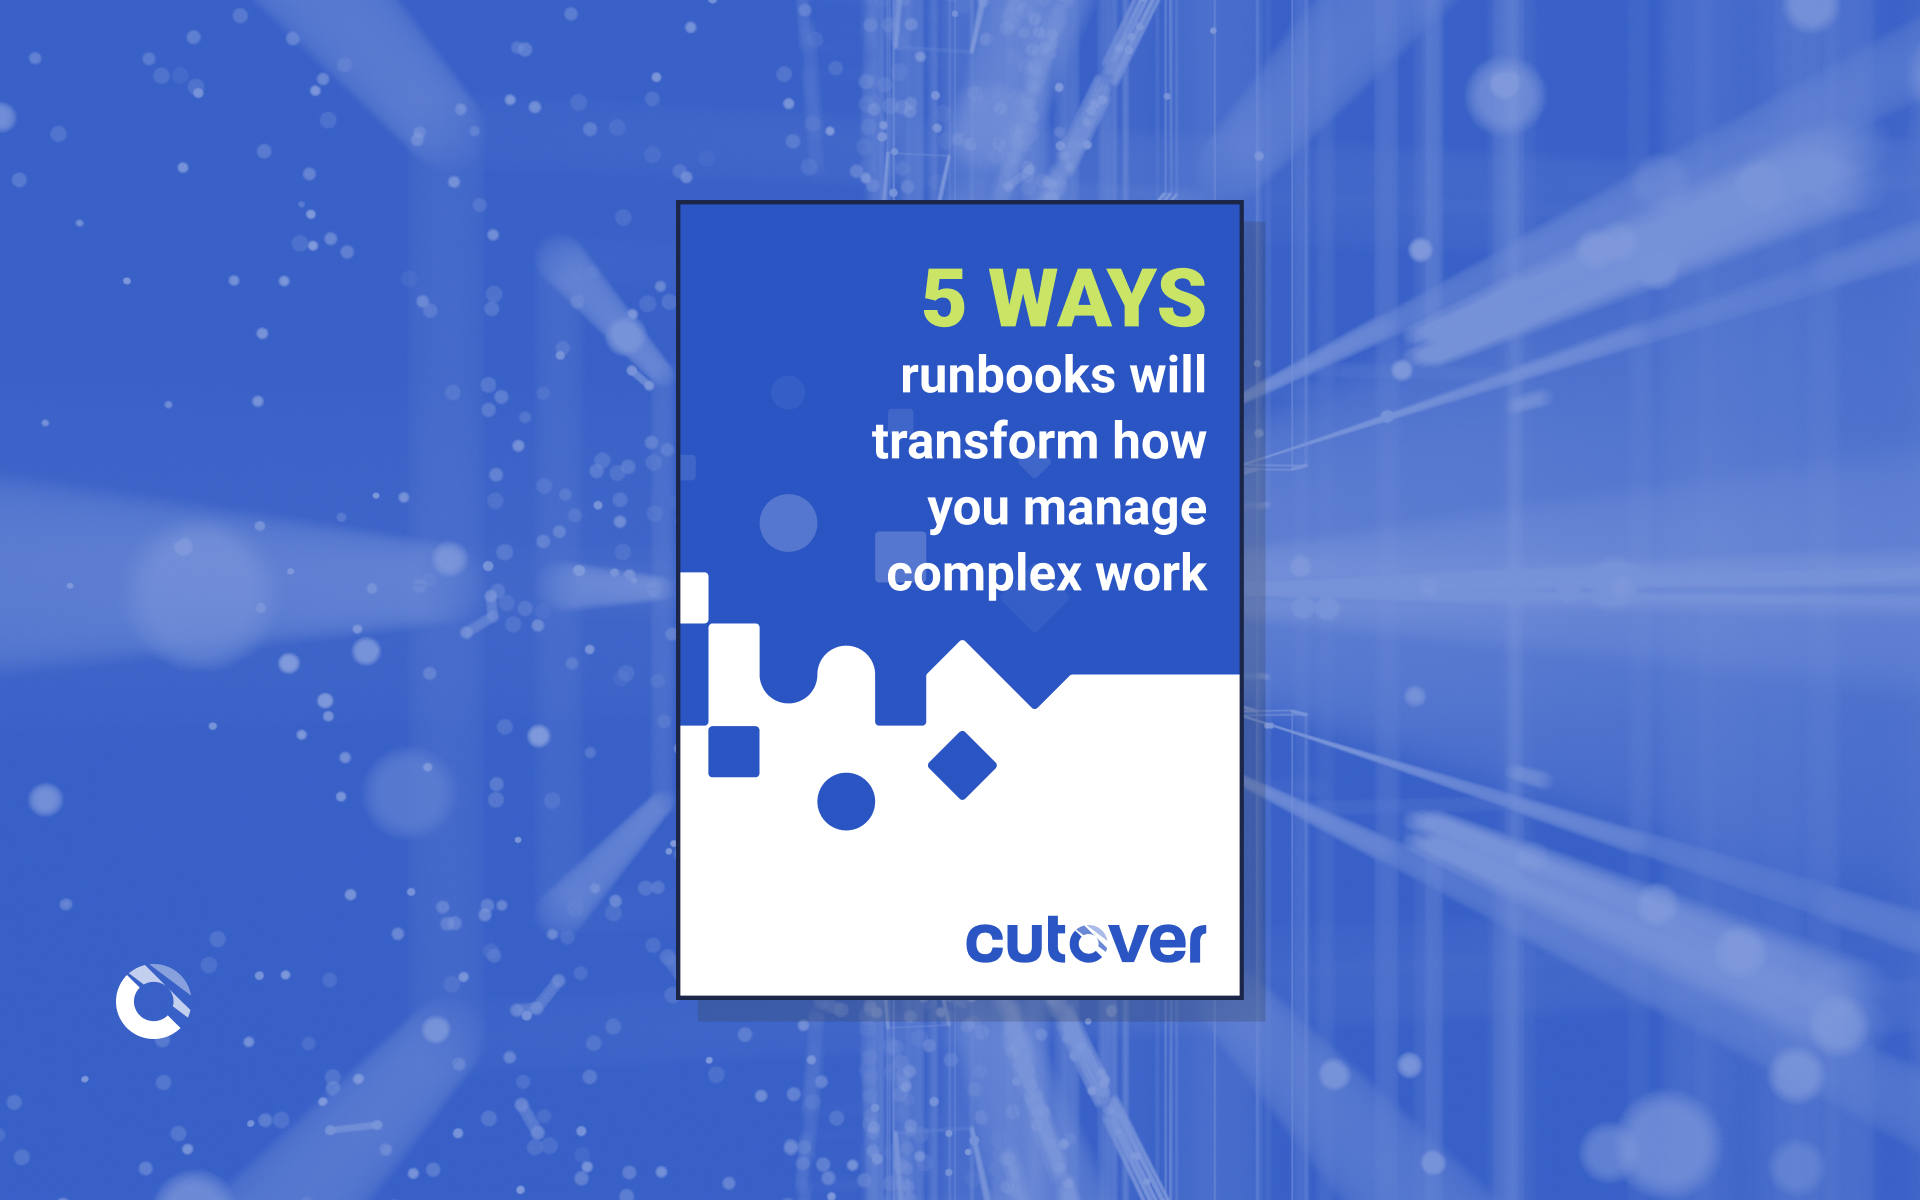 5 ways runbooks will transform how you manage complex work